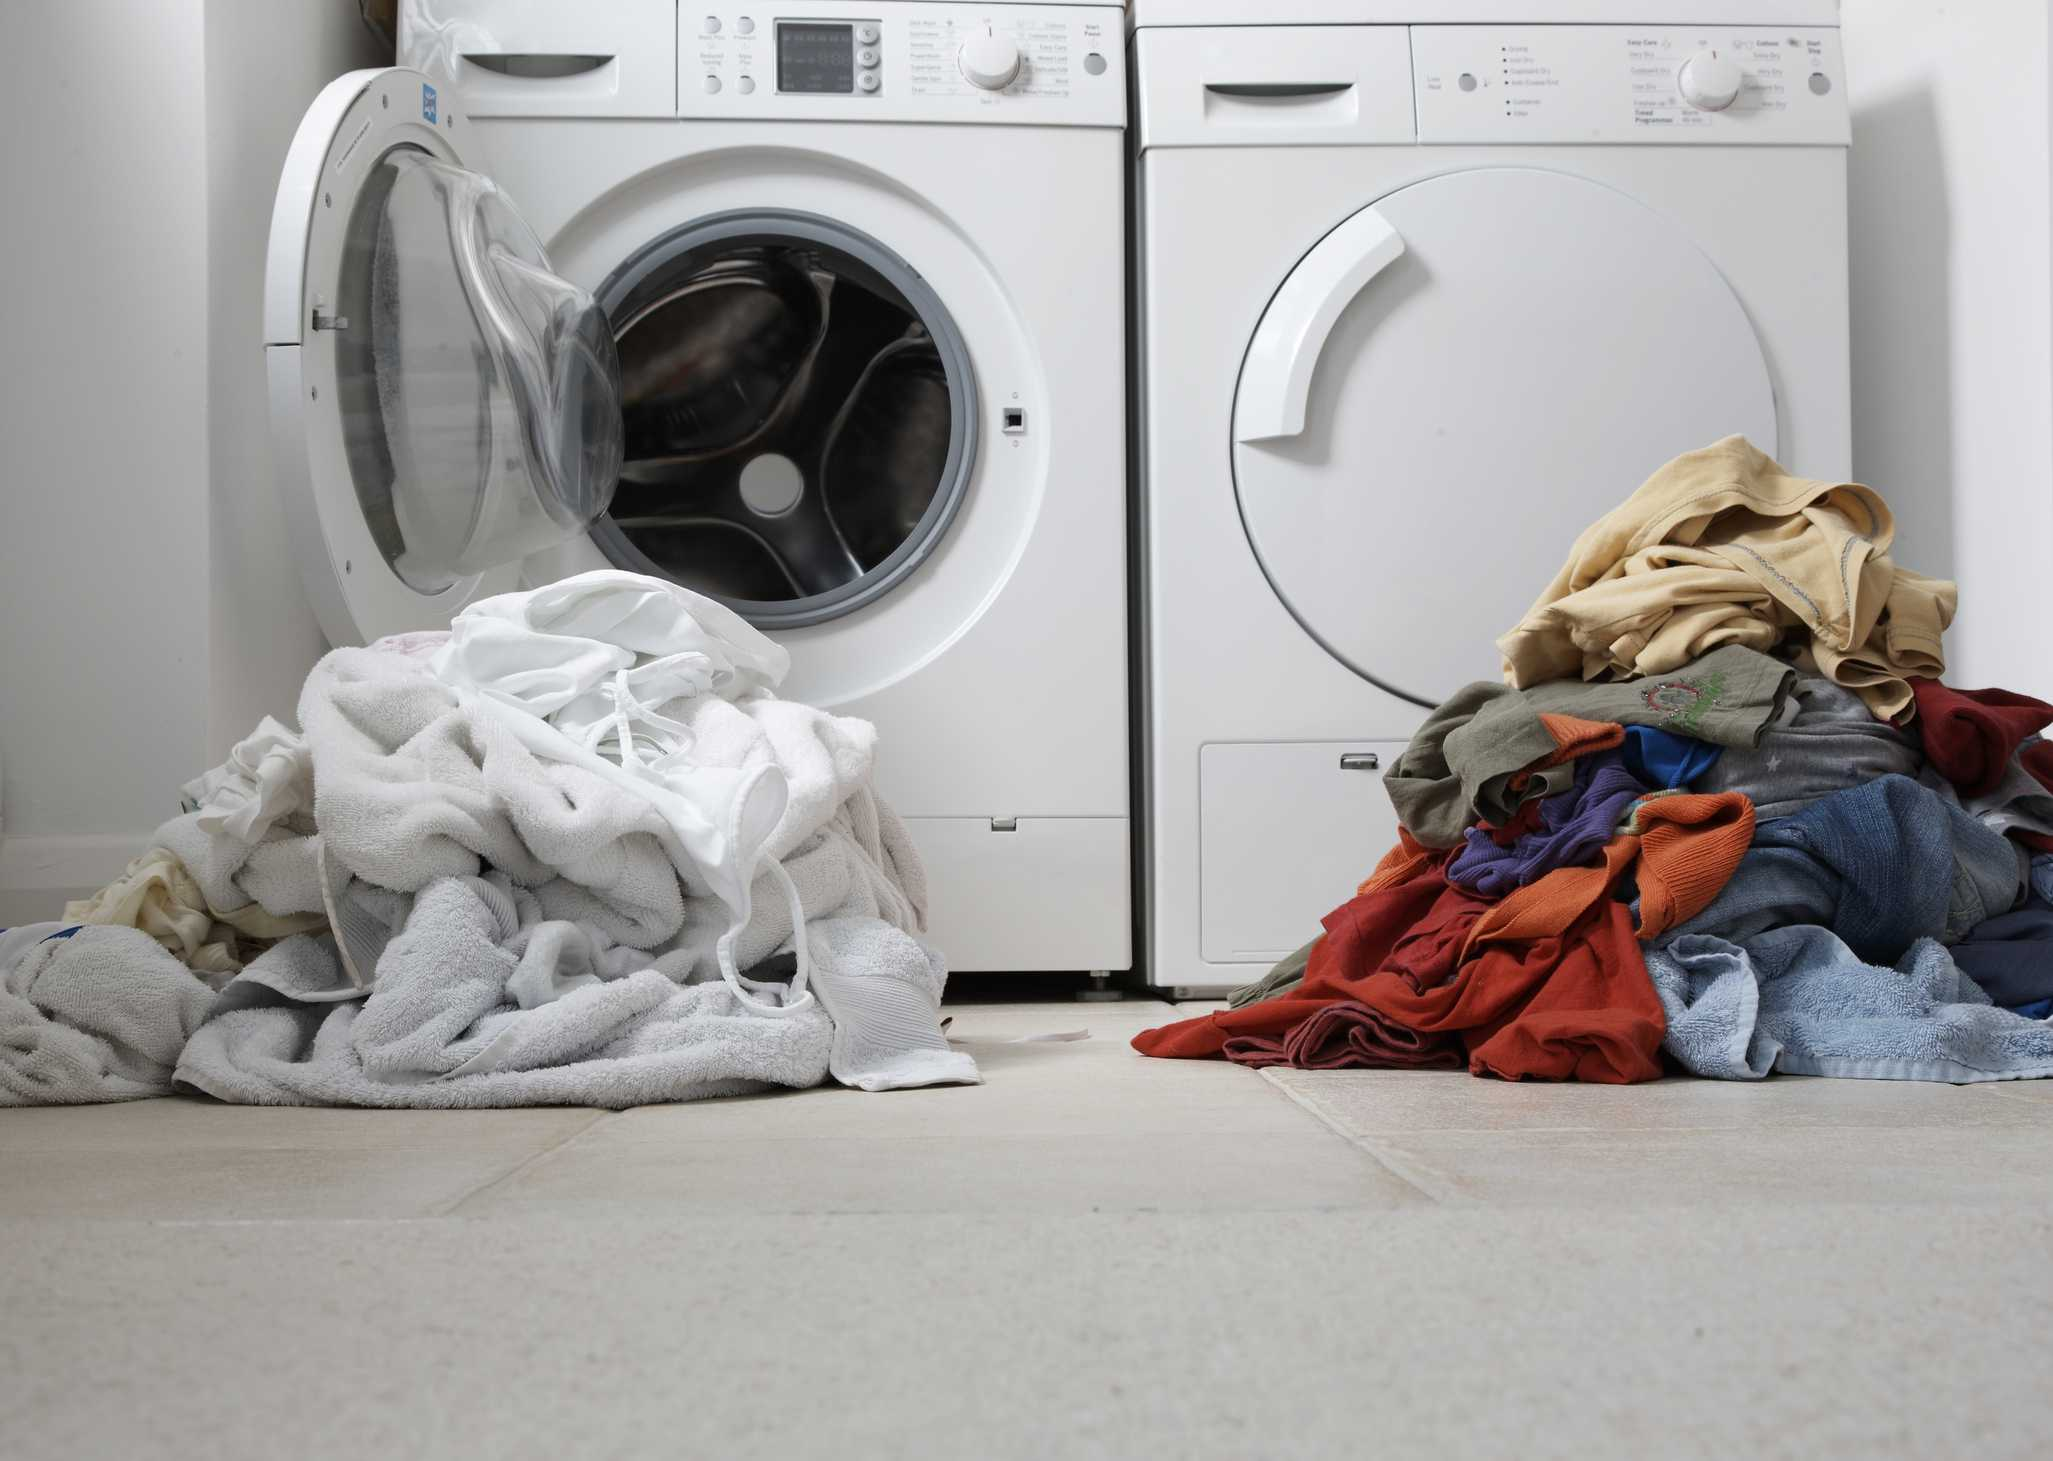 Sorted laundry in front of a washer and dryer